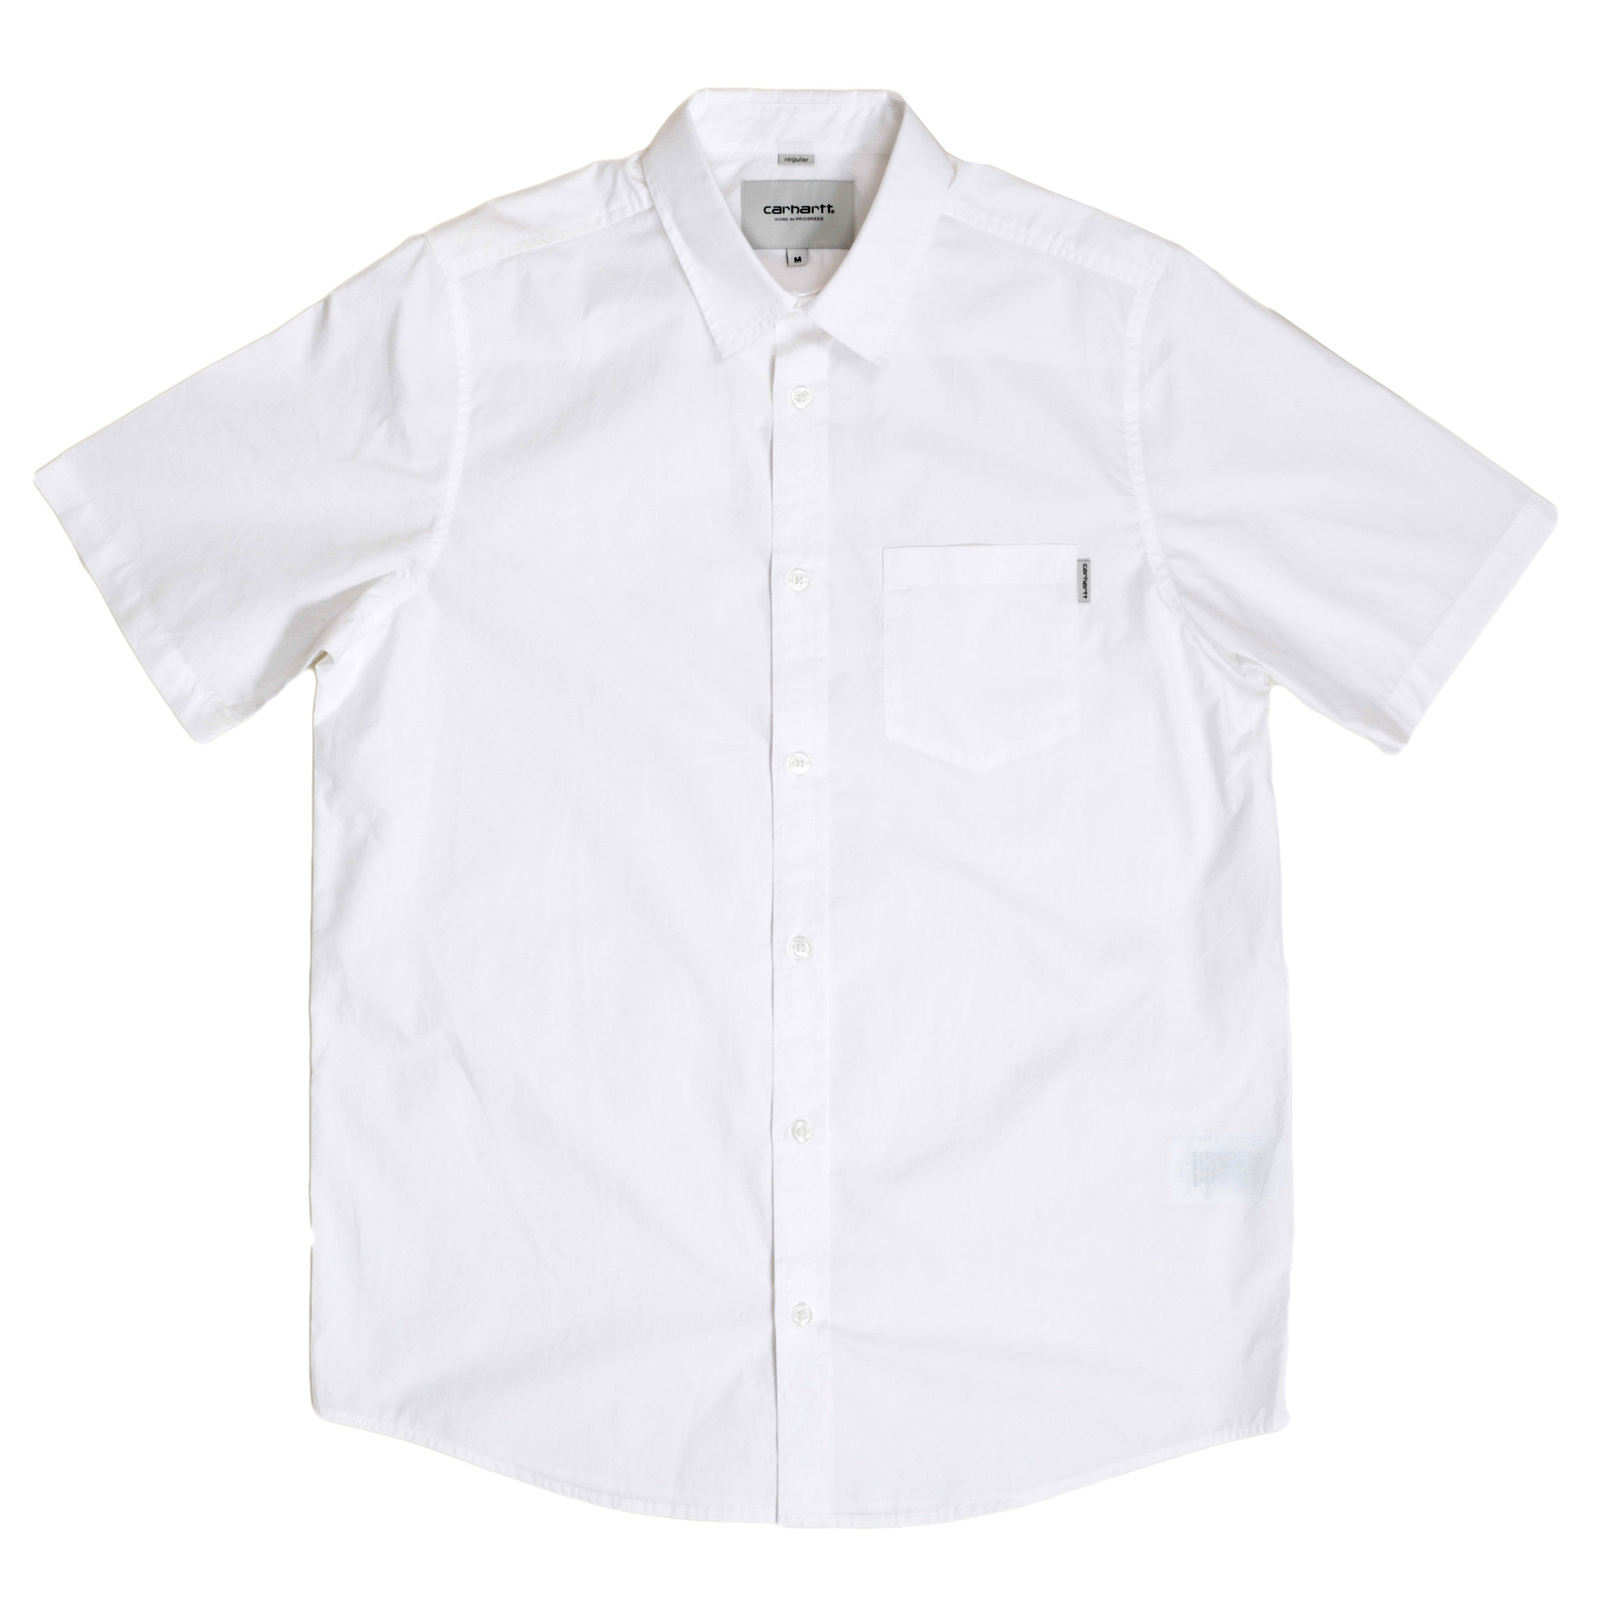 White Designer Short Sleeve Shirts For Men By Carhartt